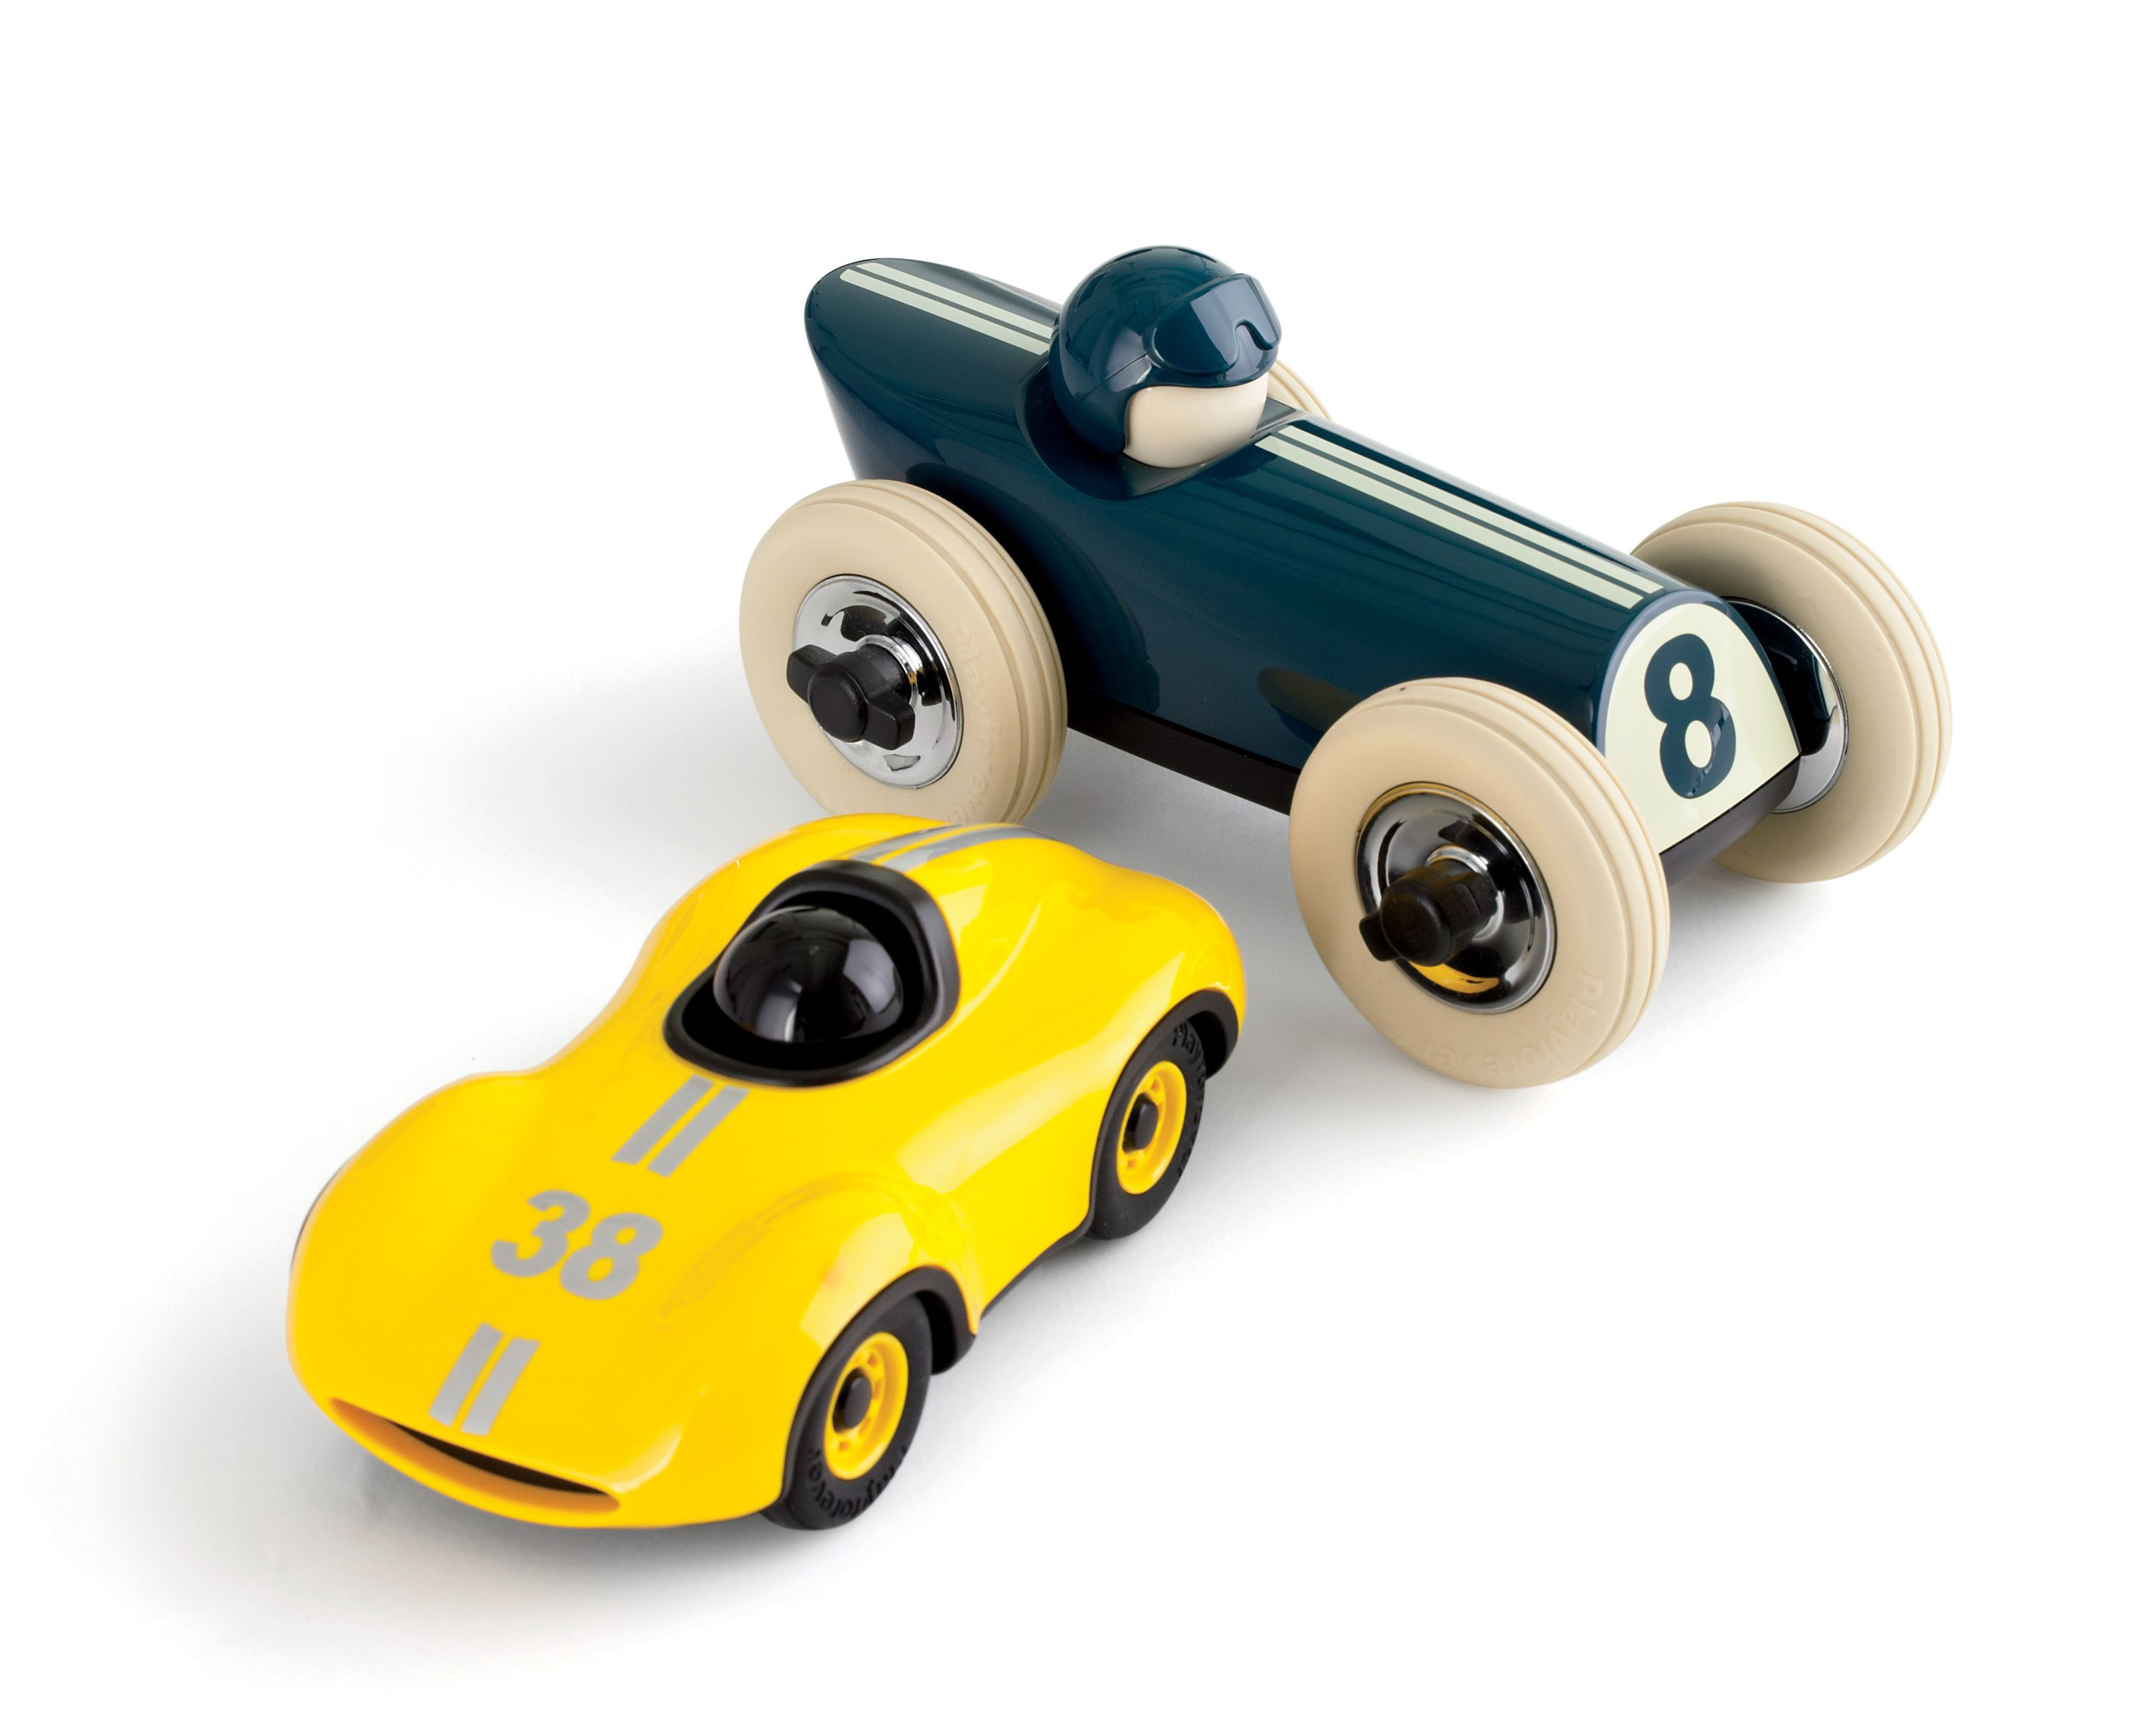 Toys car for baby  Race car toys  Home  Pinterest  Toy Wooden toys and Babies